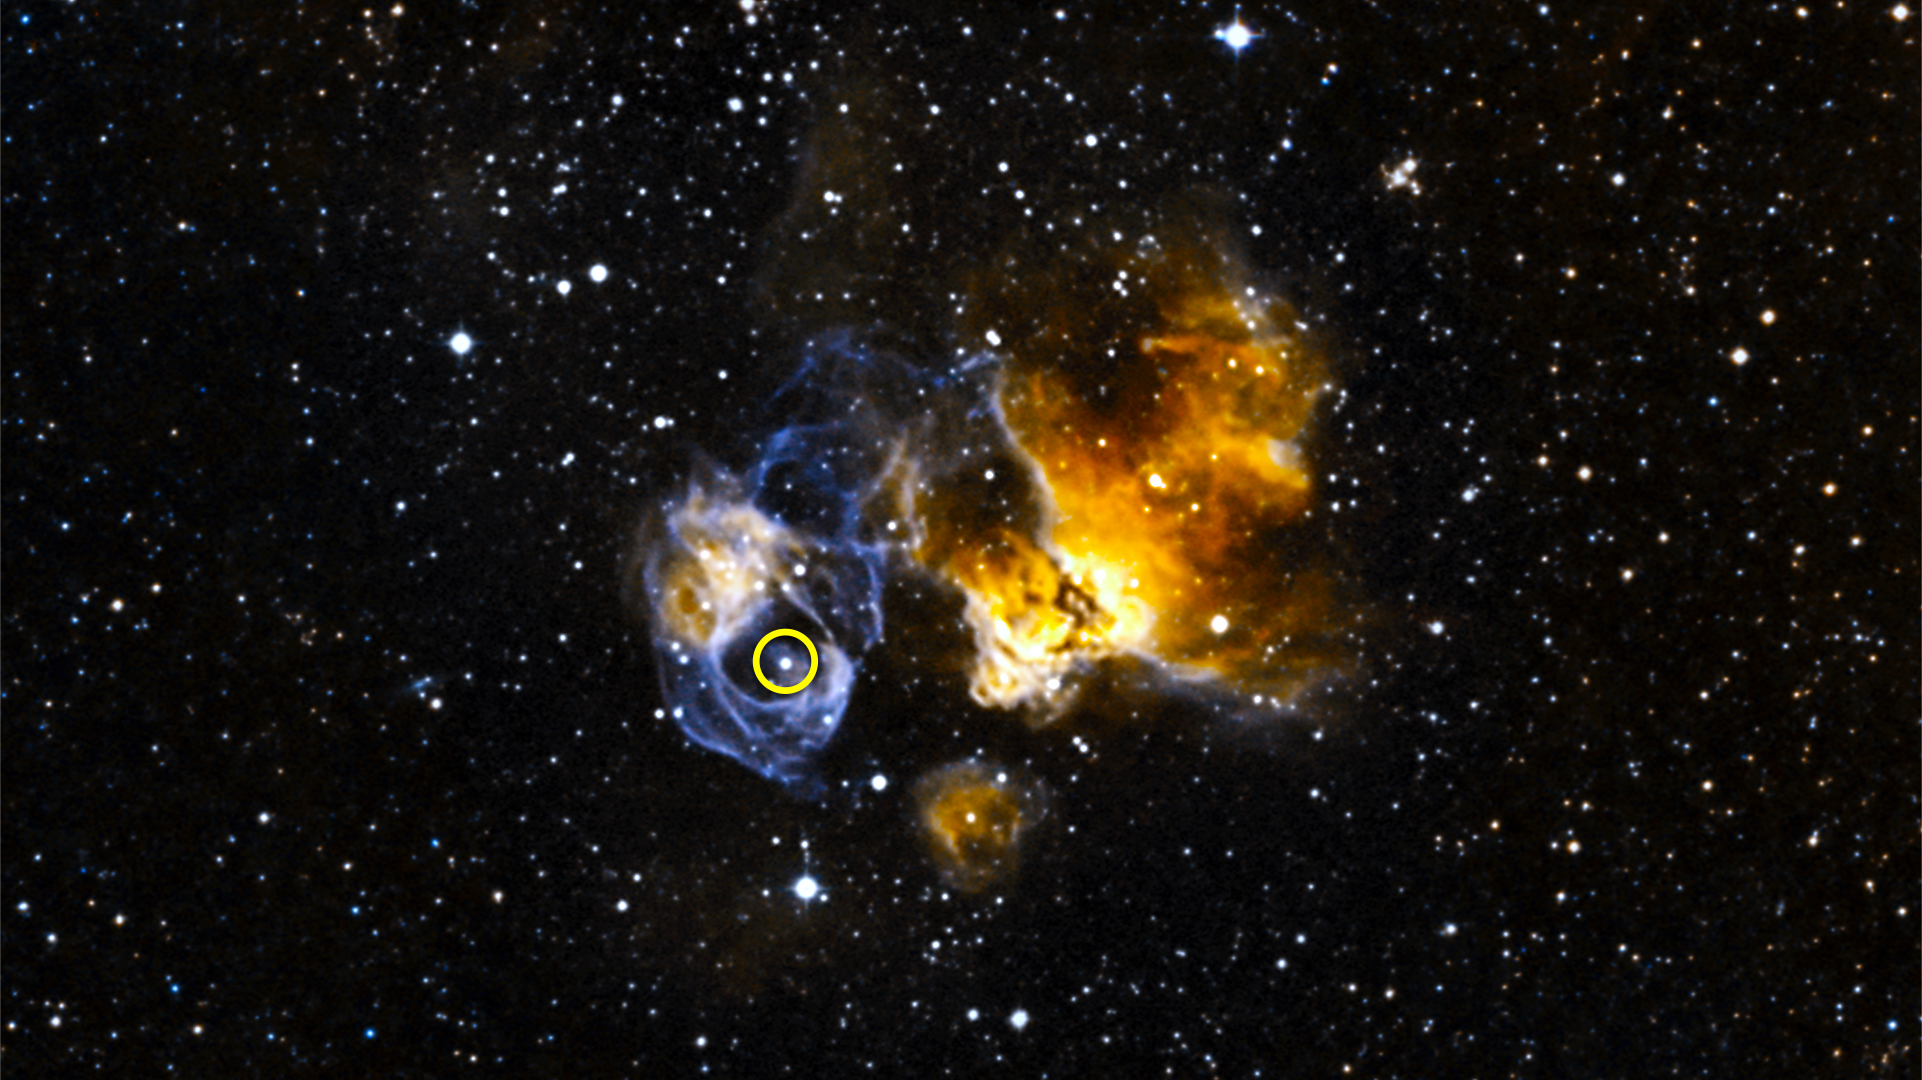 LMC P3 (circled) is located in a supernova remnant called DEM L241 in the Large Magellanic Cloud, a small galaxy about 163,000 light-years away. The system is the first gamma-ray binary discovered in another galaxy and is the most luminous known in gamma rays, X-rays, radio waves and visible light.